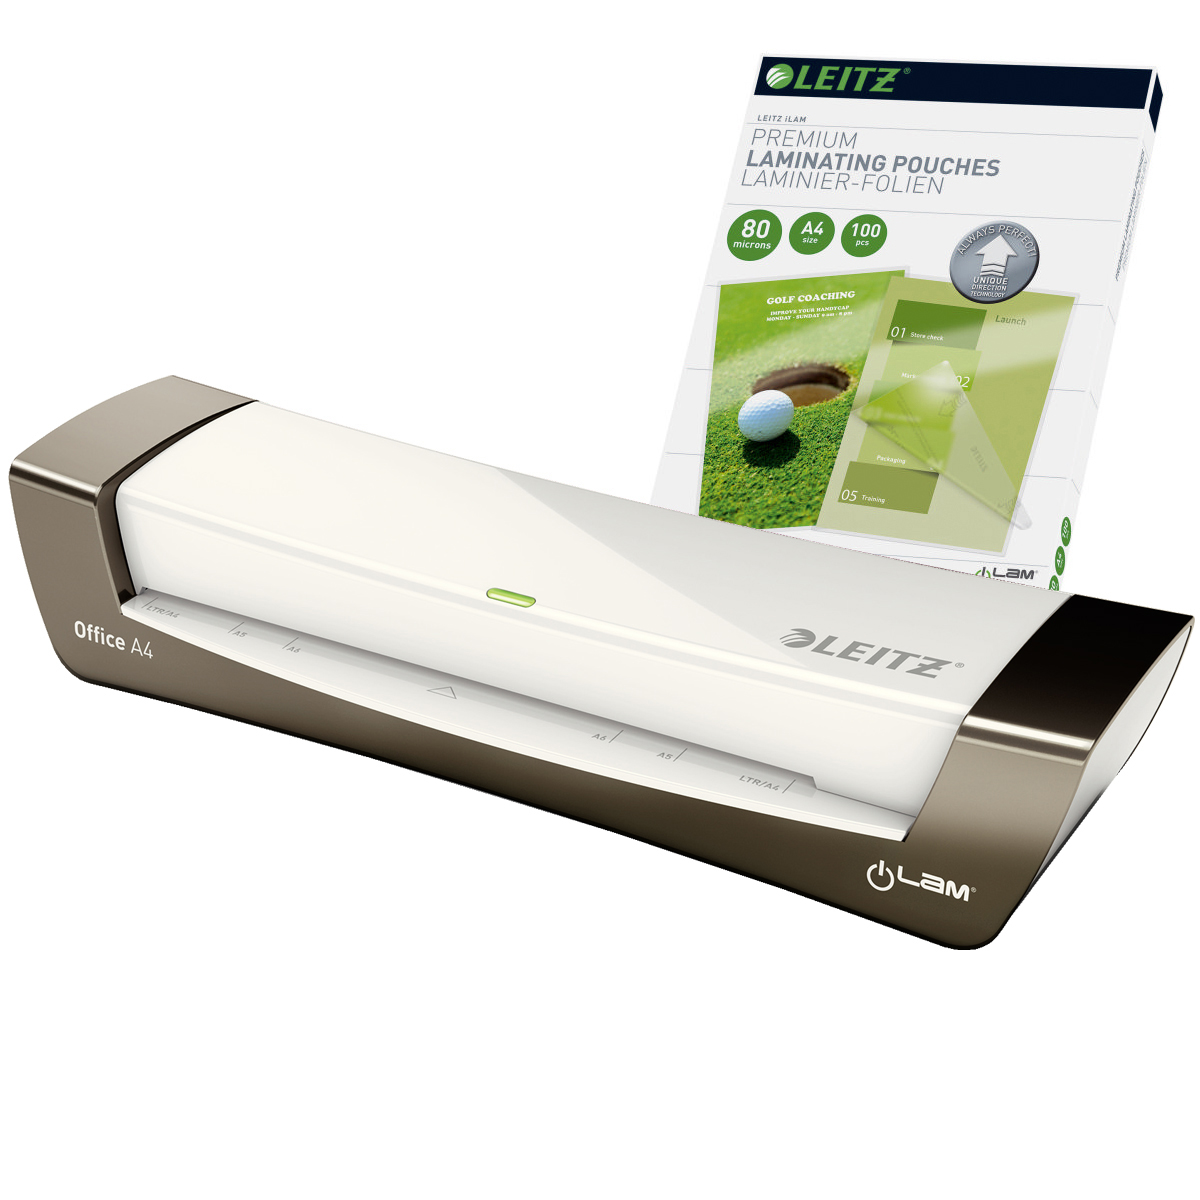 Leitz iLAM Office A4 Silver Laminator and Pouches Bundle